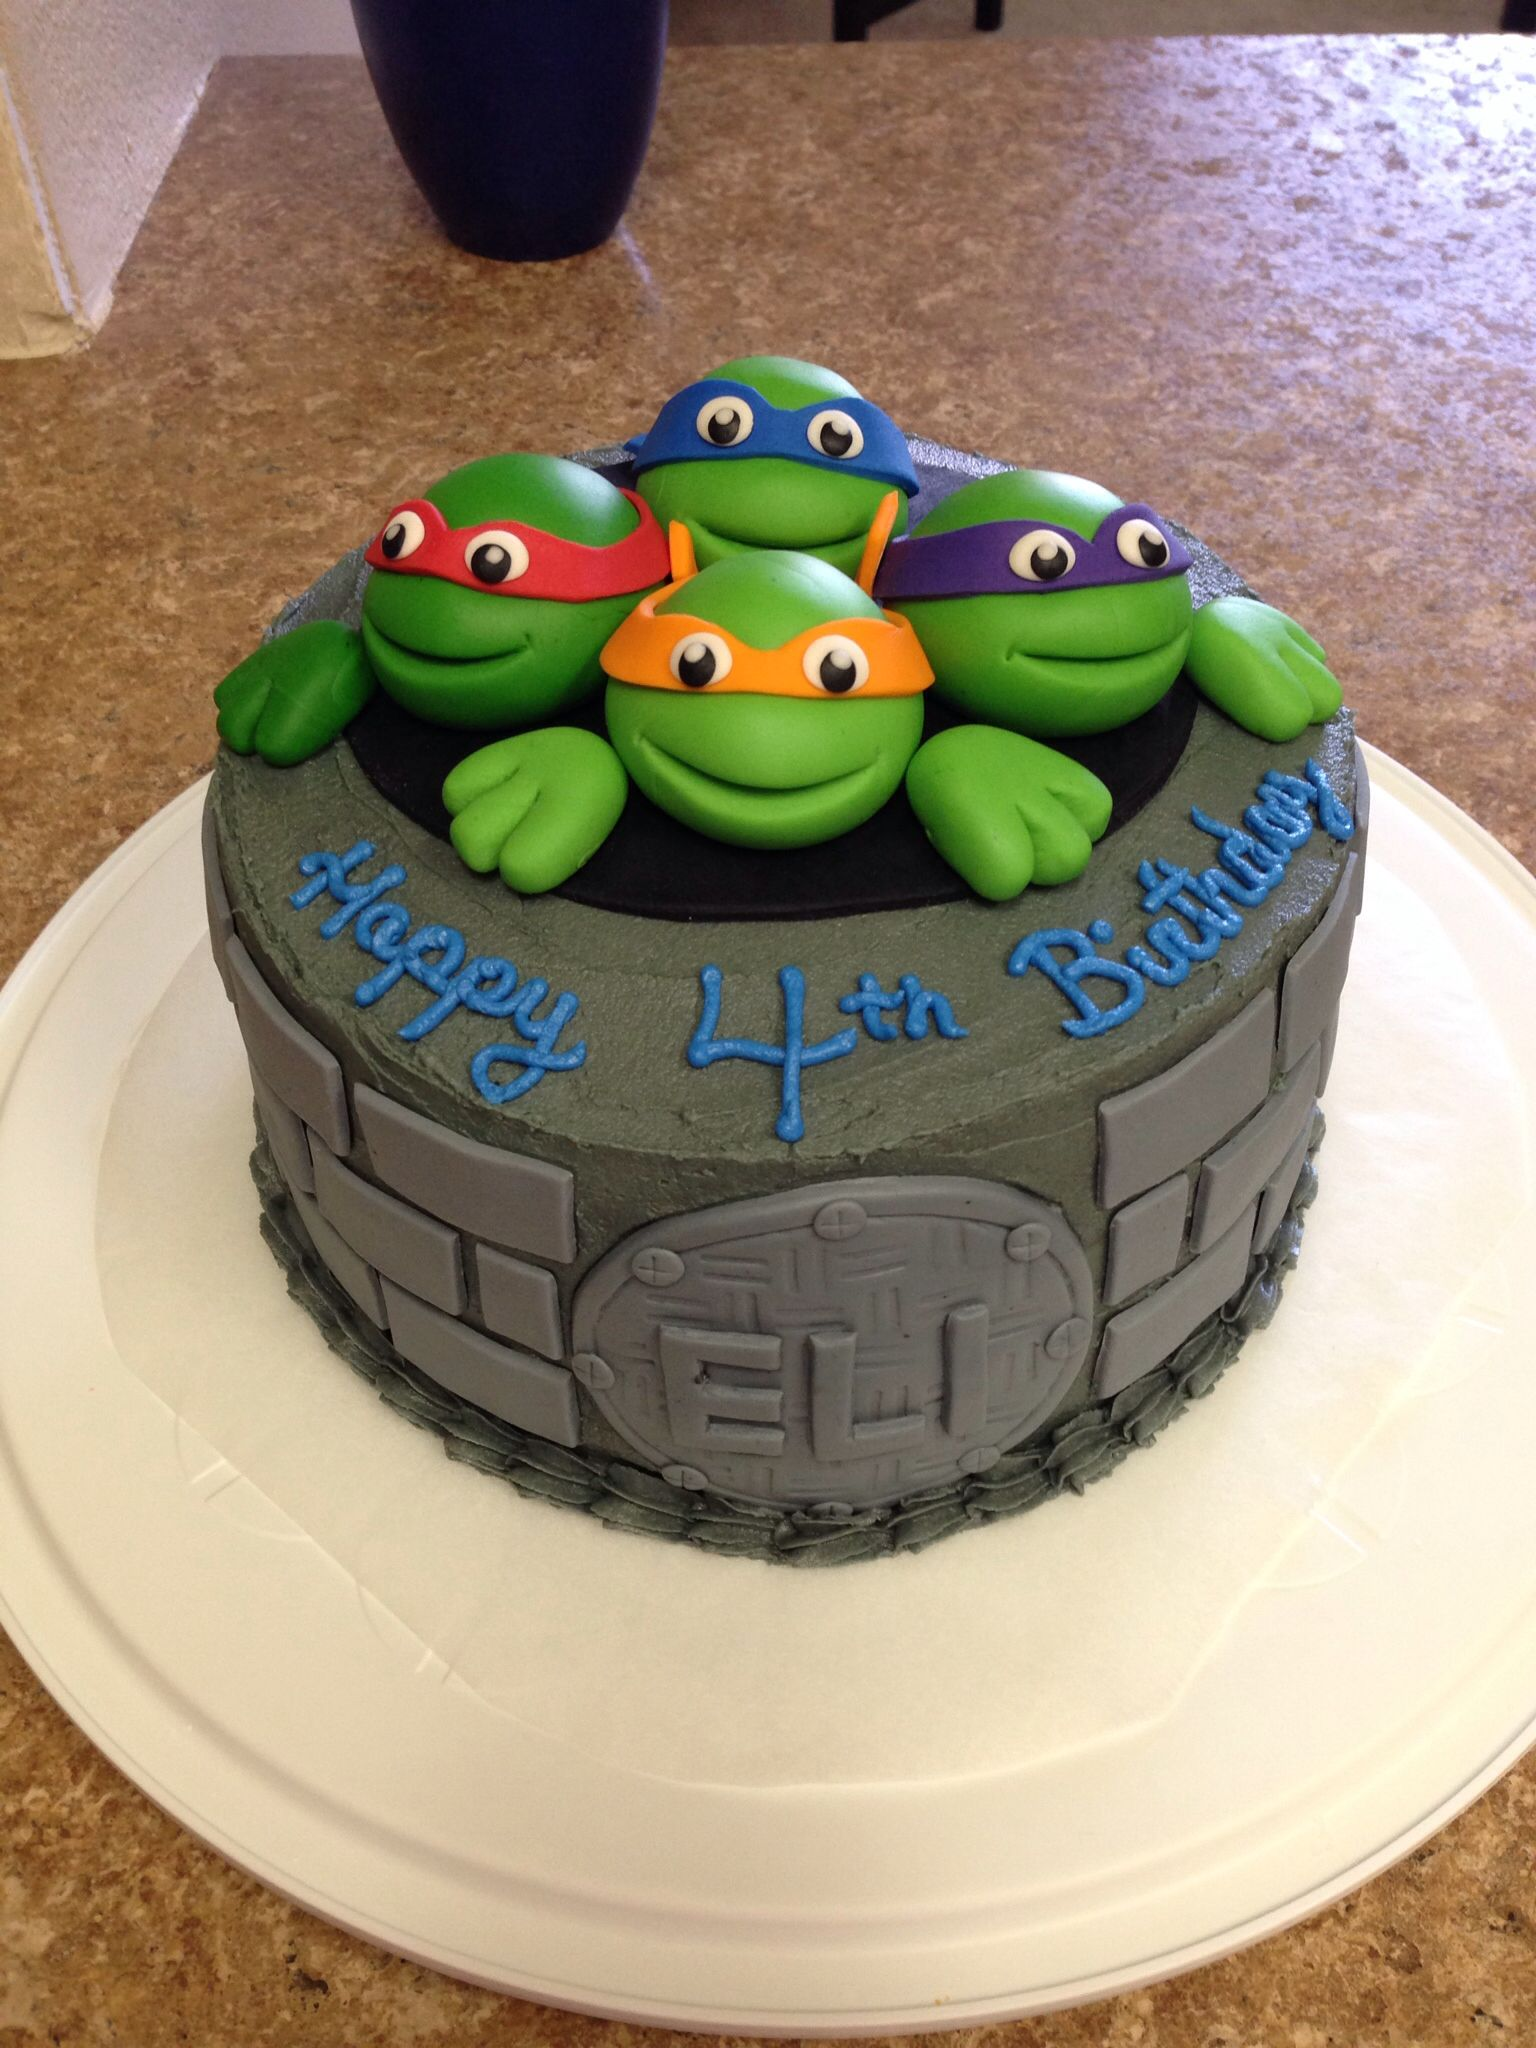 Tmnt Cake I Made For My Son S 4th Birthday I Used Fondant